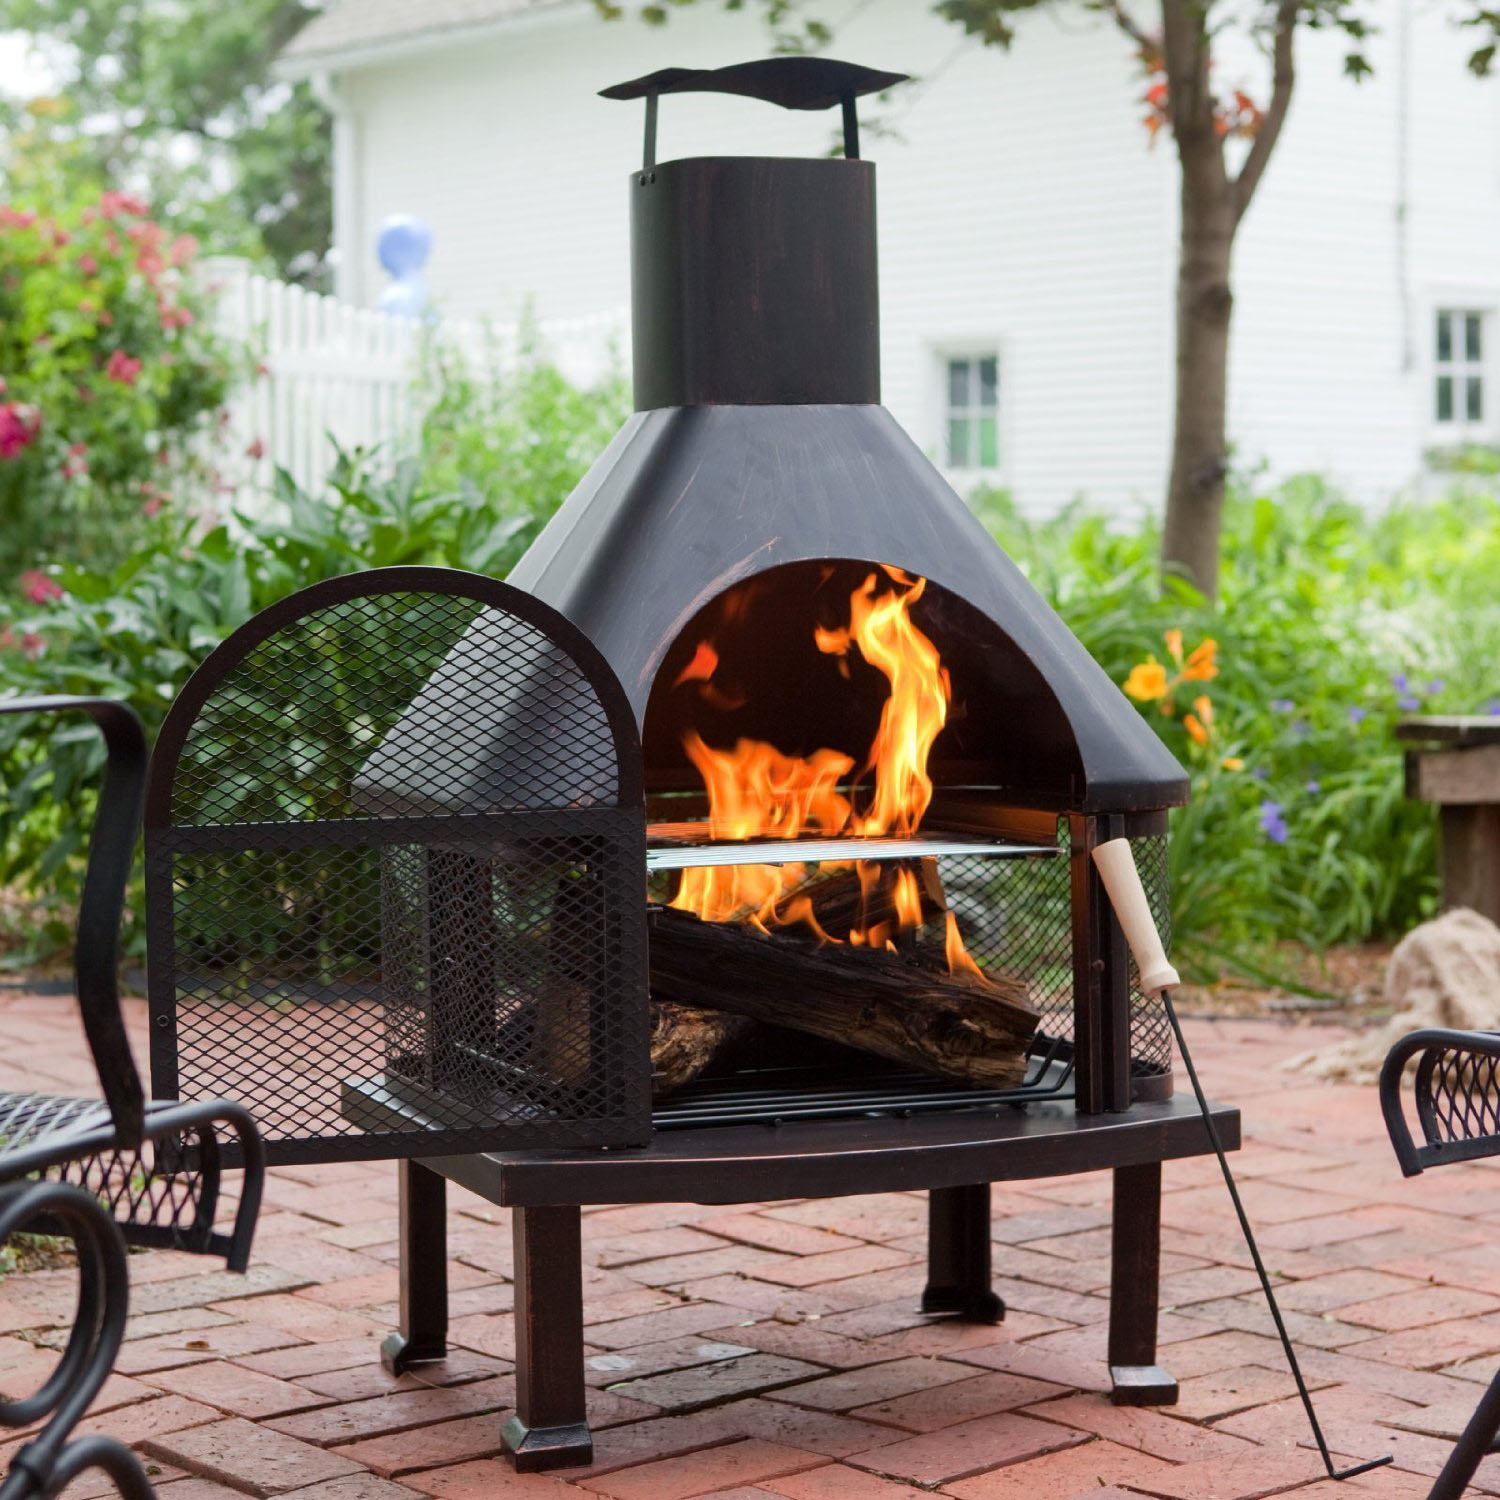 Outdoor Chiminea Fireplace